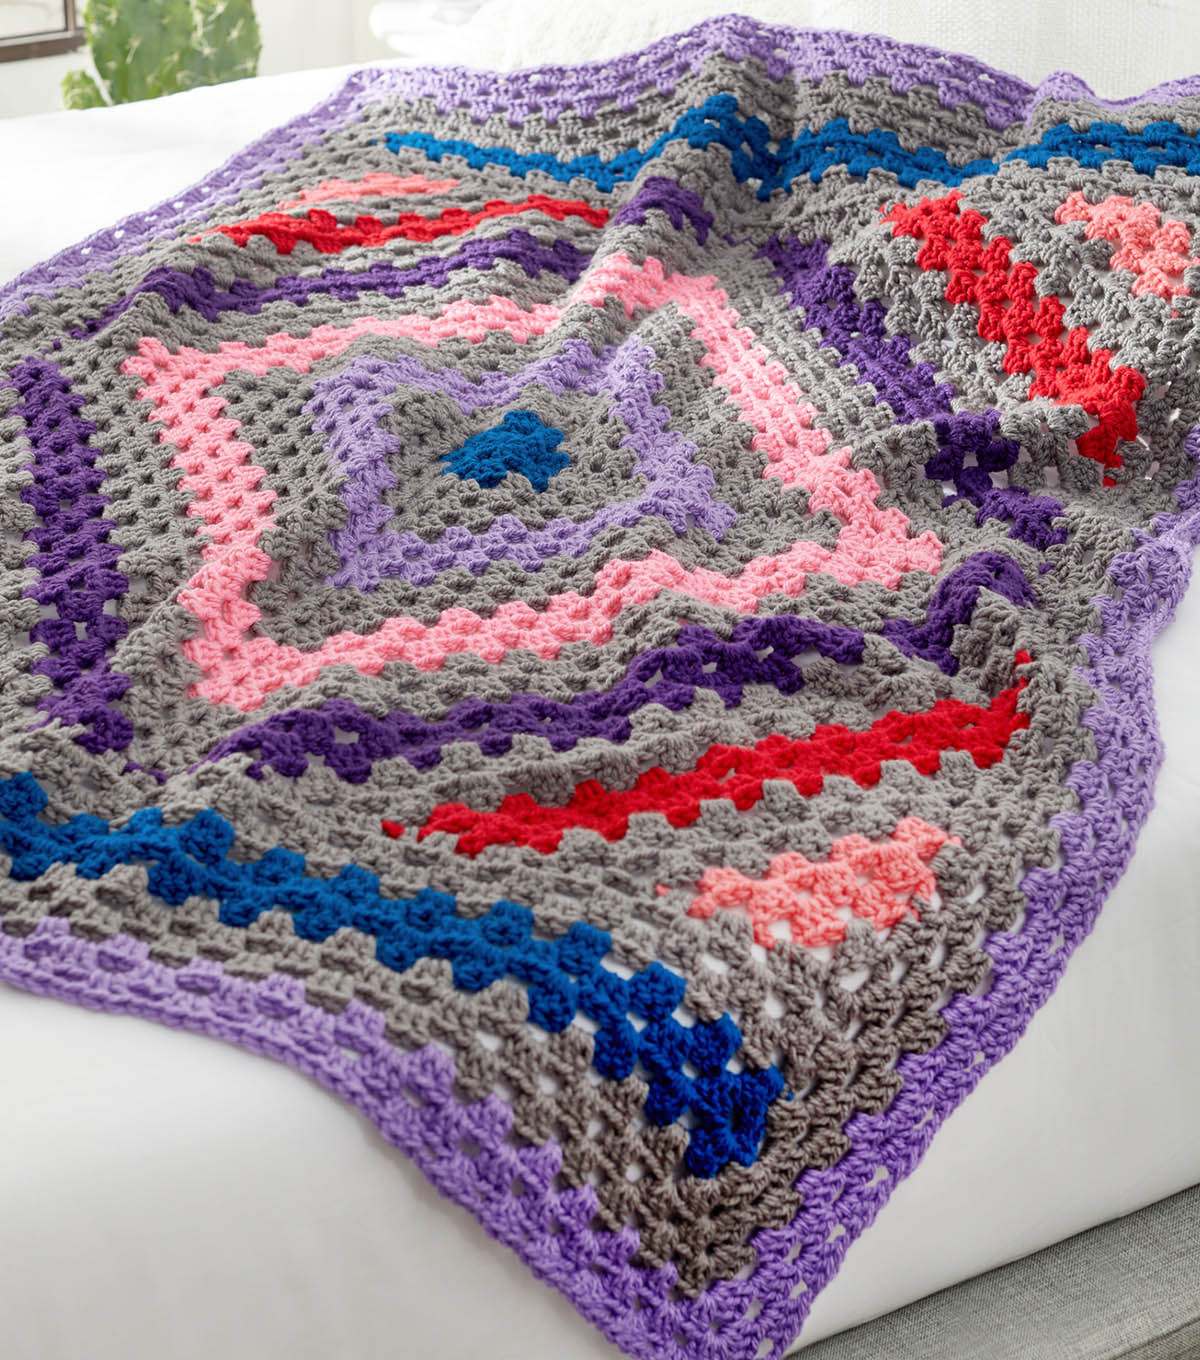 How To Make A Diamond in the Rough Crochet Throw | JOANN